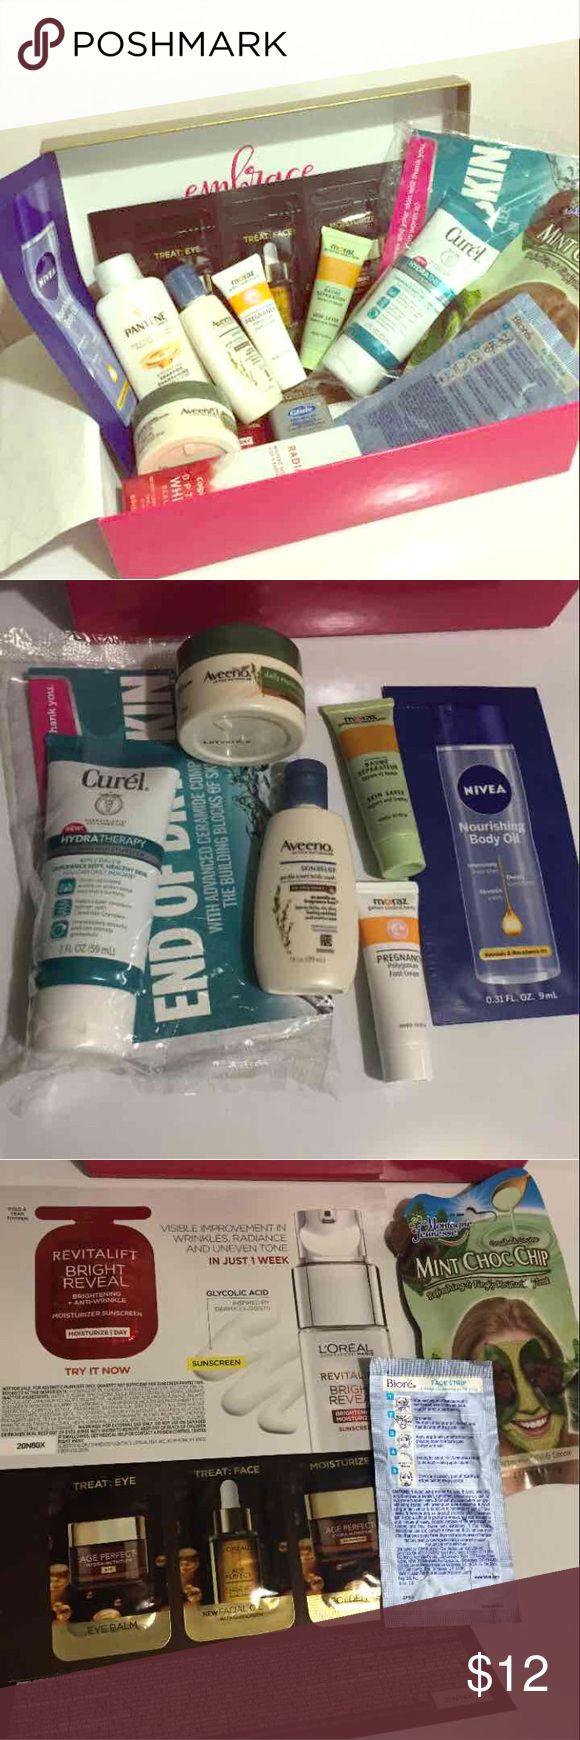 ❤️Beauty Bundle❤️ All are either sample /deluxe sample /travel sized.  Body, hair, face, teeth beauty products! 13 products in total.  -L'Oréal age perfect hydra nutrition sample -Nivea nourishing body oil  -L'Oréal recitalist.  -mint choc chip Face mask.  -one biore face strip.  -curel hydrotherapy.  -Colgate whitening toothpaste.  -aveeno moisturizing body yogurt.  -aveeno skin relief body wash.  -Pantene hydrating shampoo -glide dental floss -moraz pregnancy polygonum foot cream -moraz…